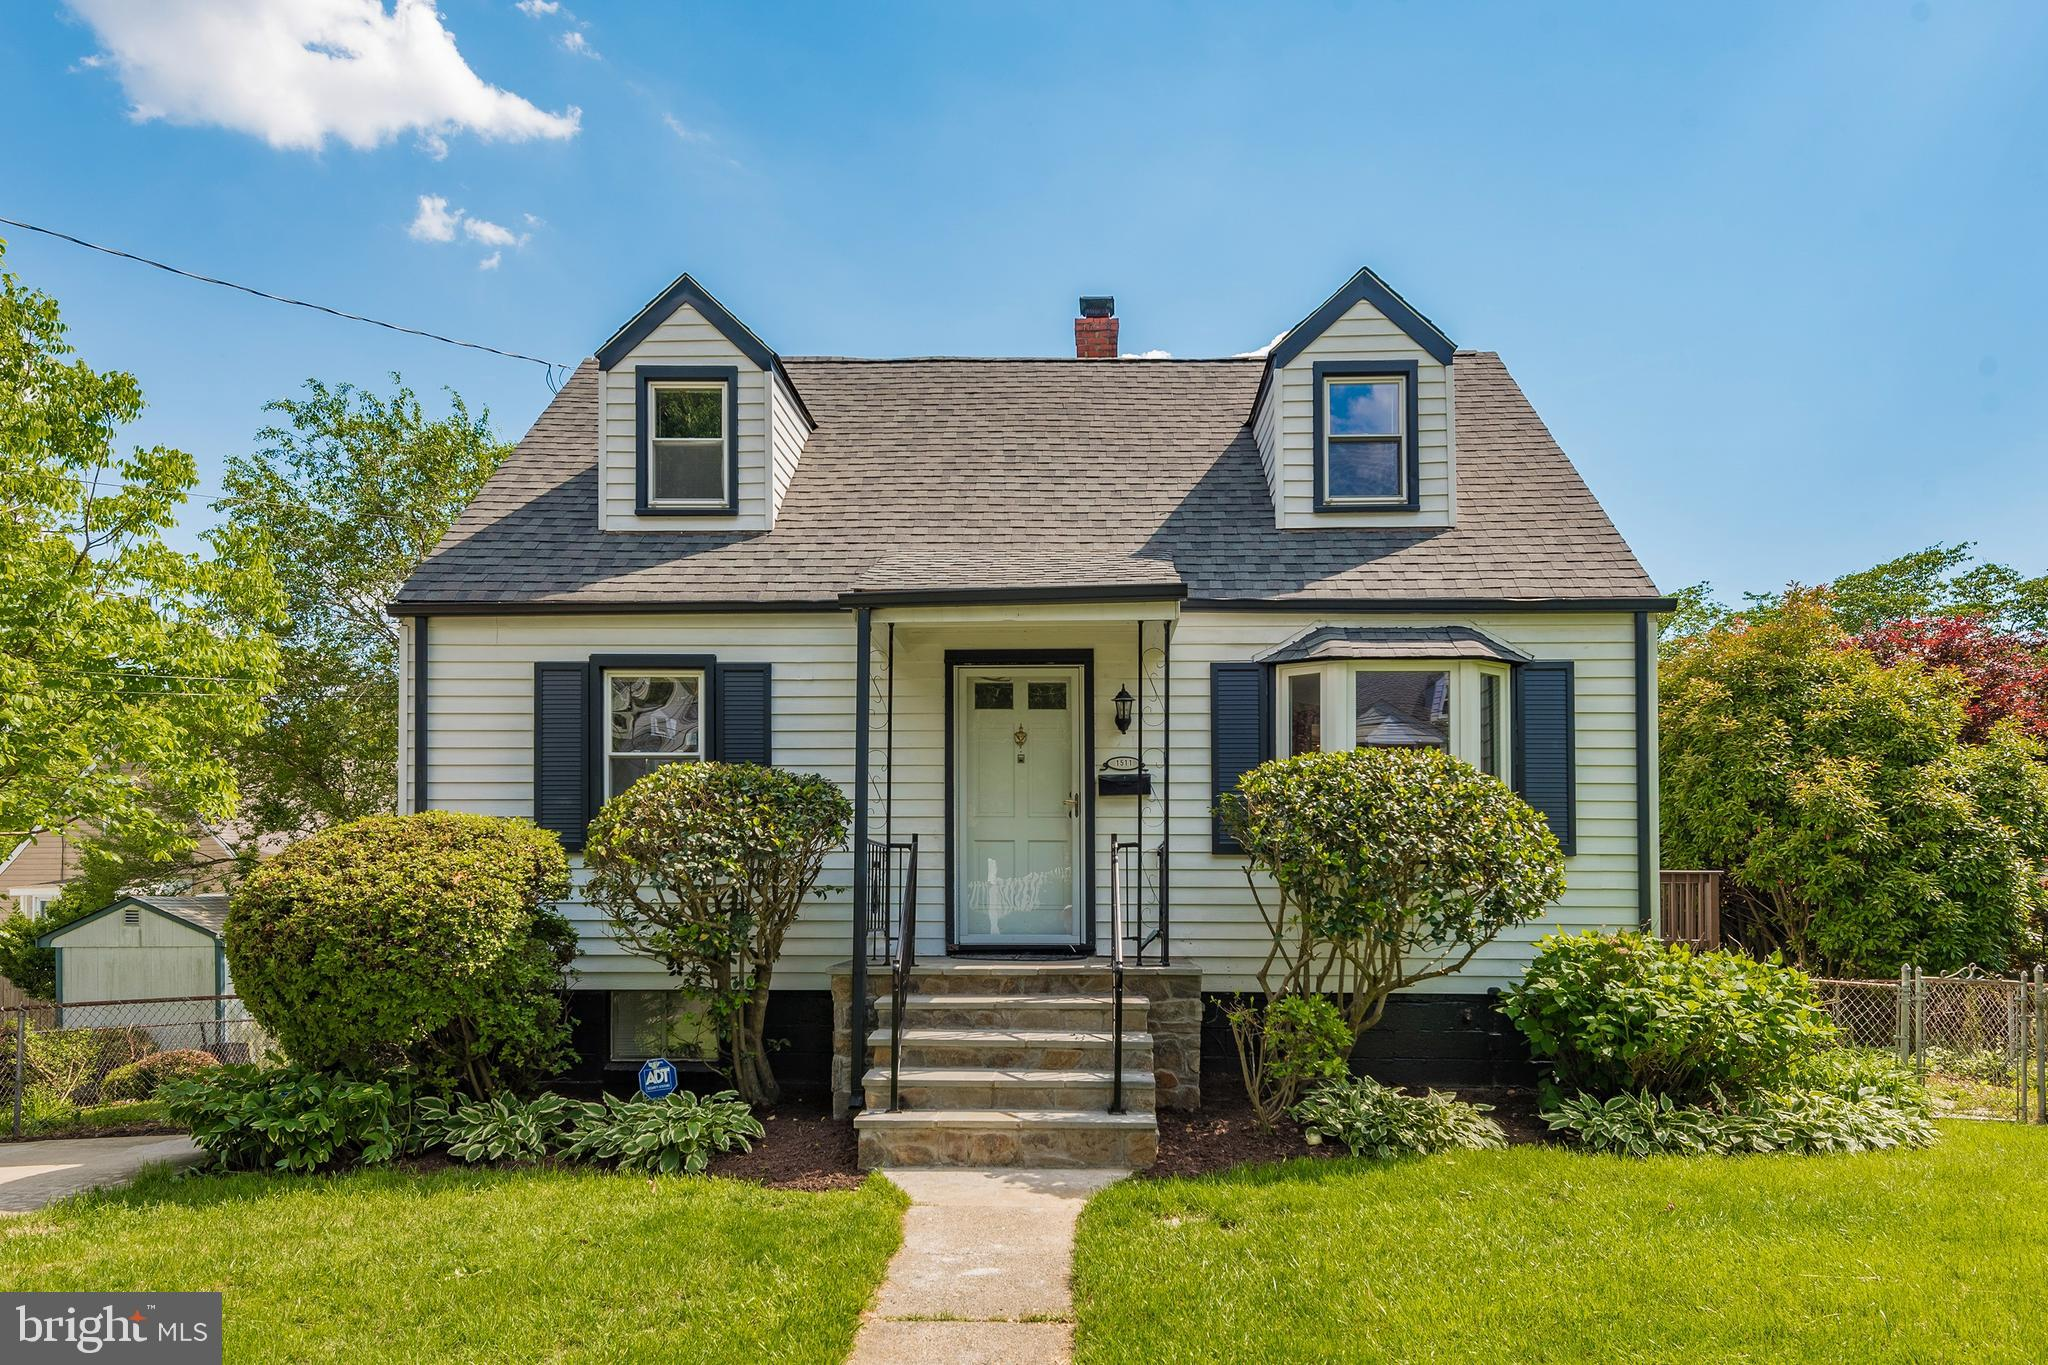 1511 MOFFET ROAD, SILVER SPRING, MD 20903